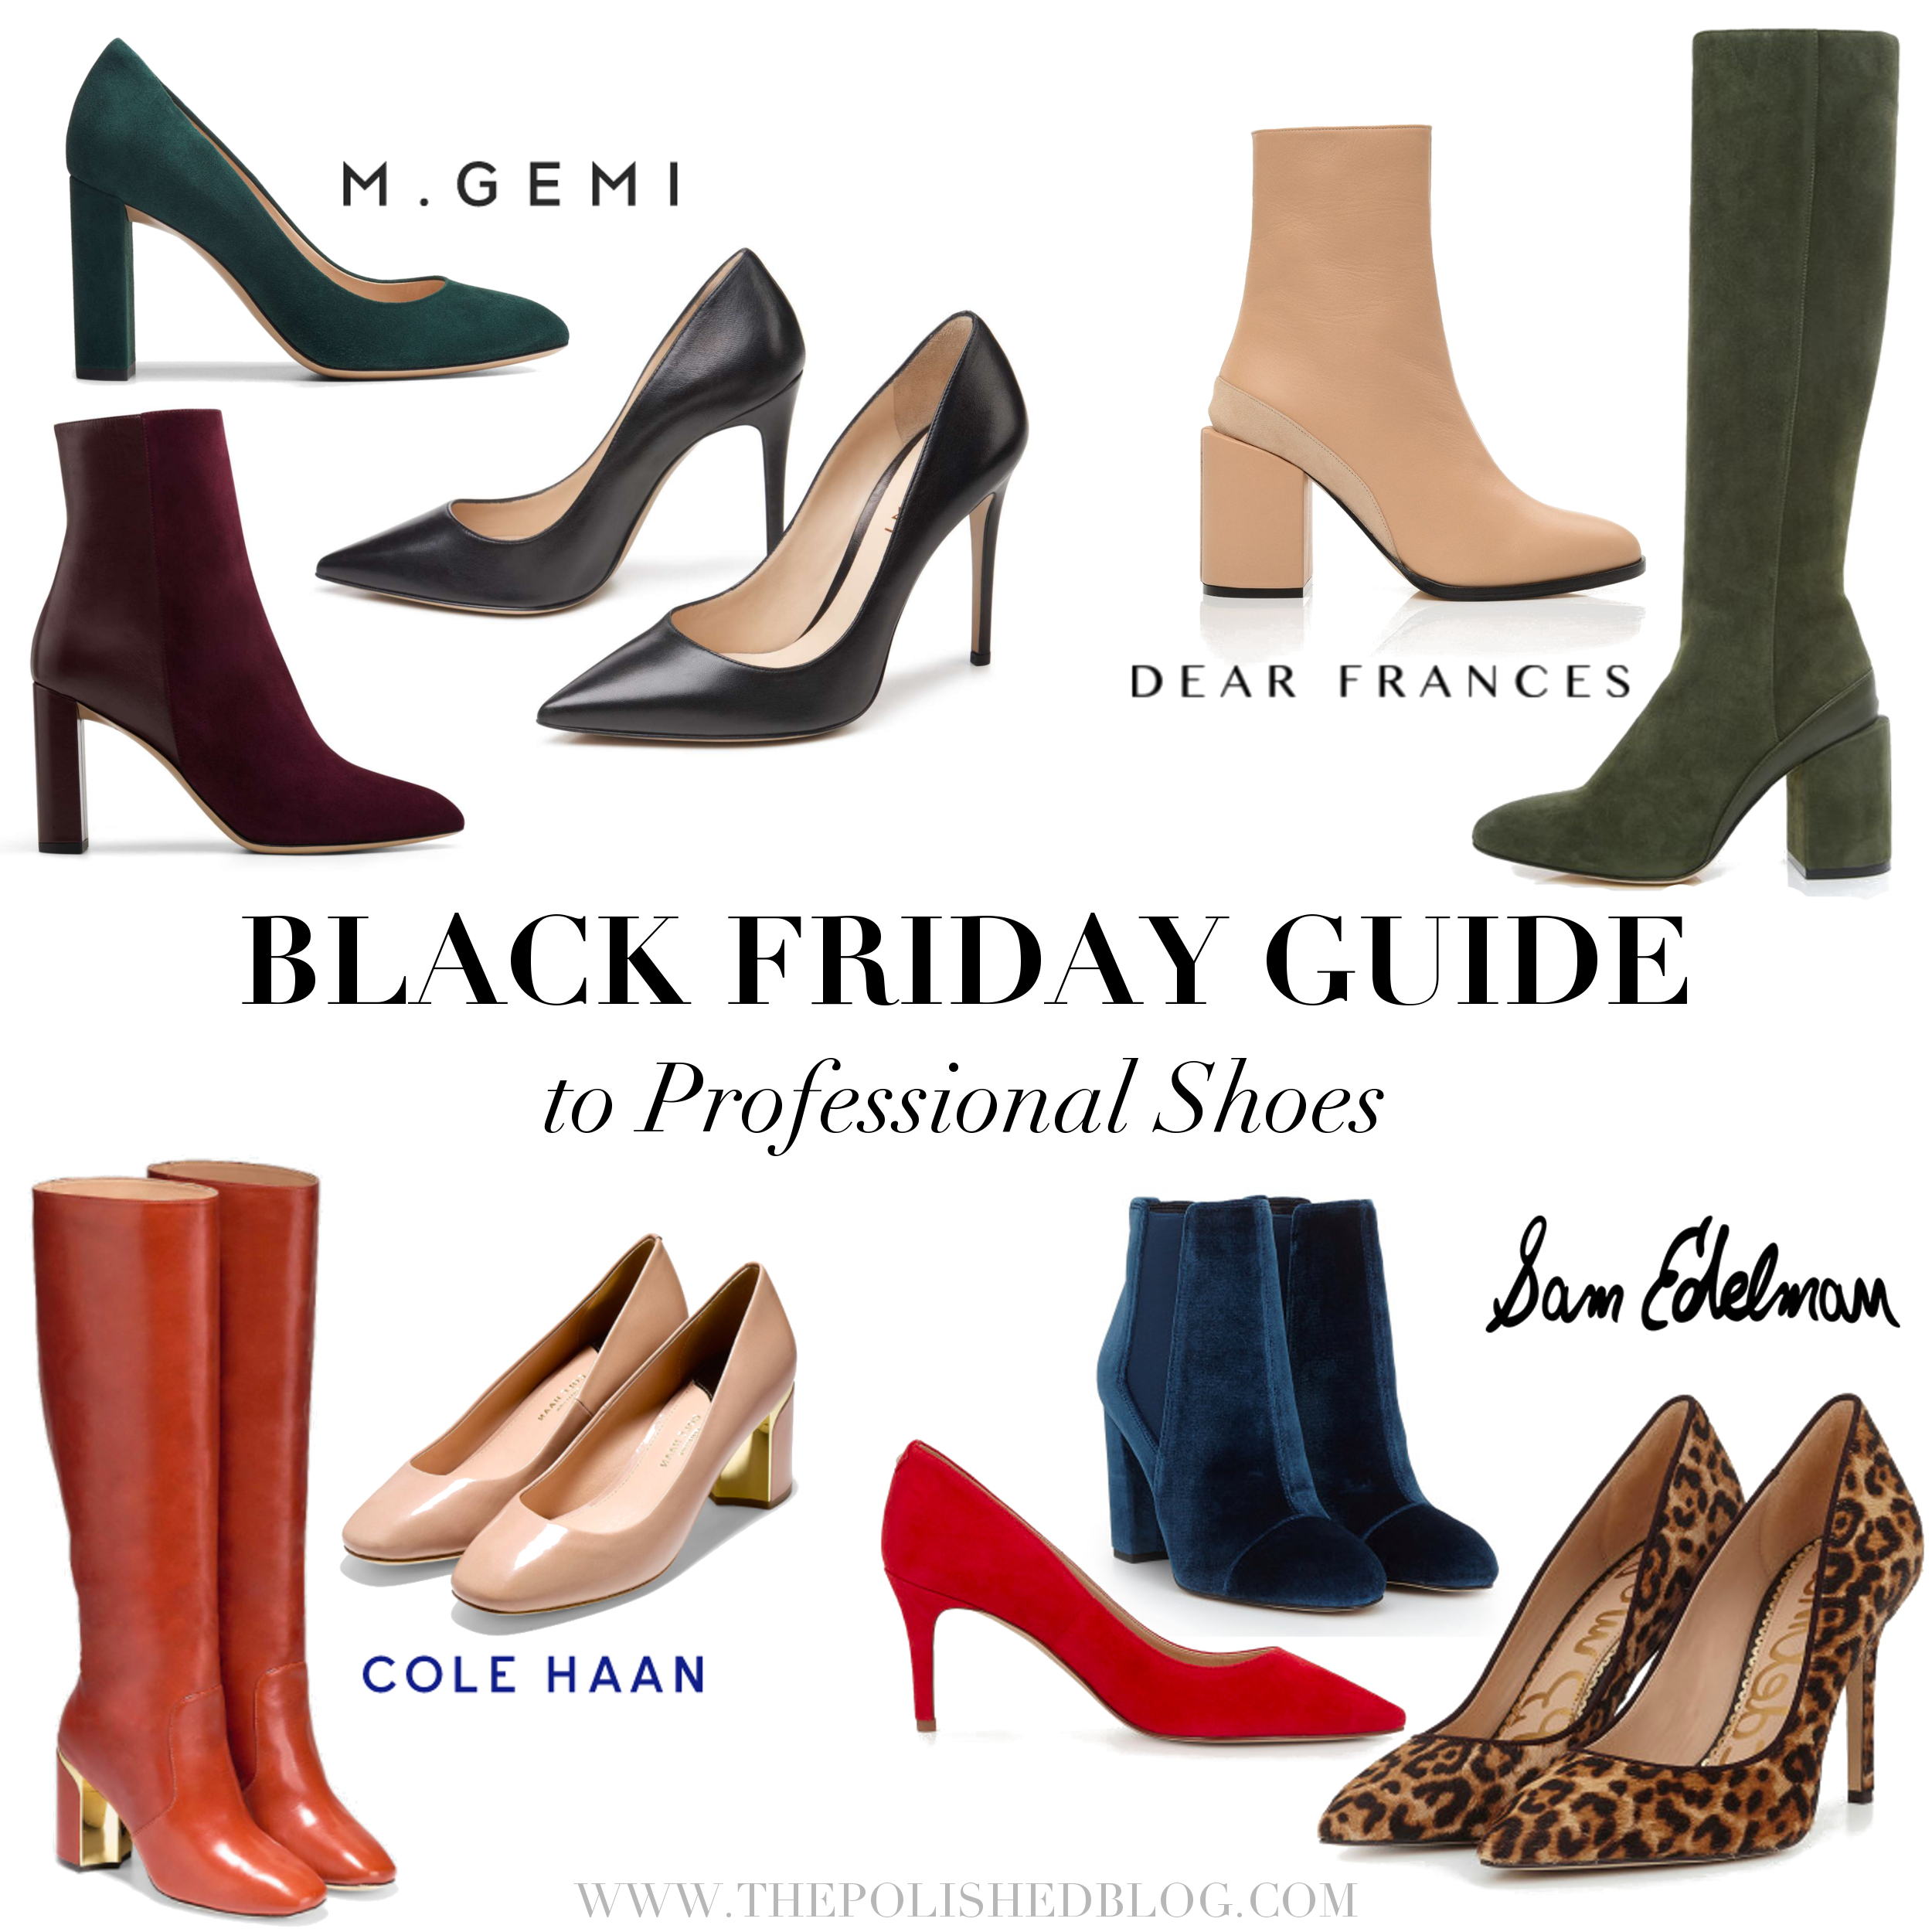 Black Friday Guide to Professional